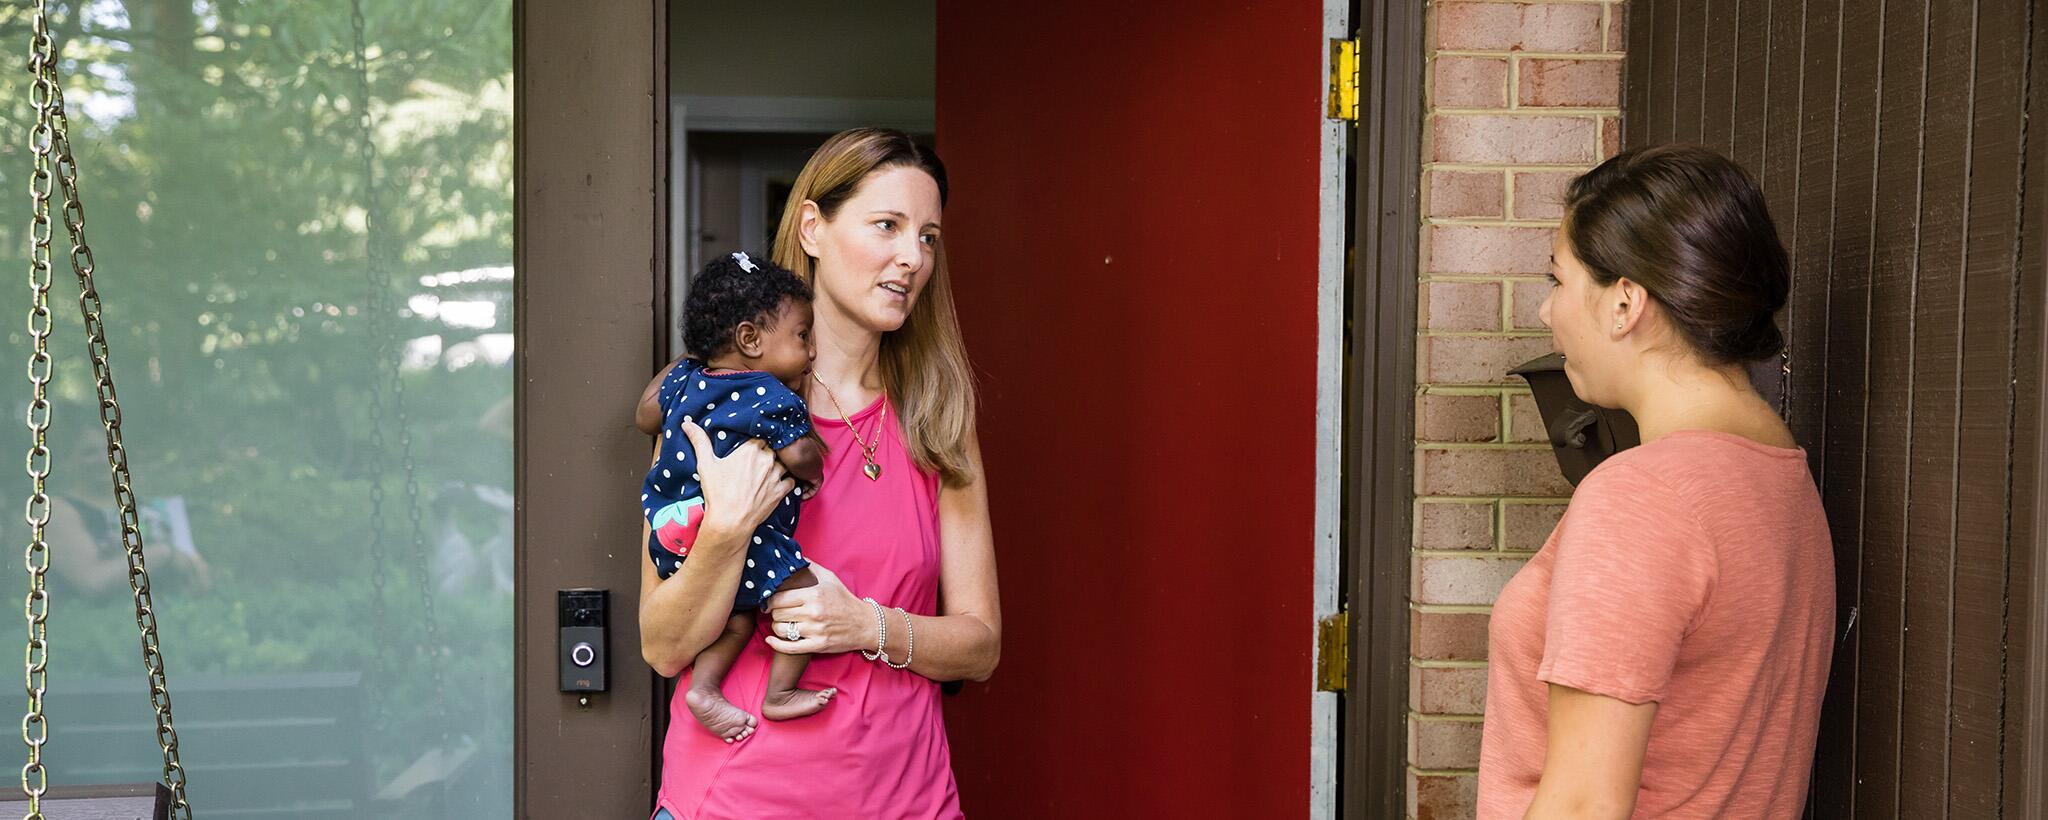 a woman holding an infant talks to her neighbor at the door